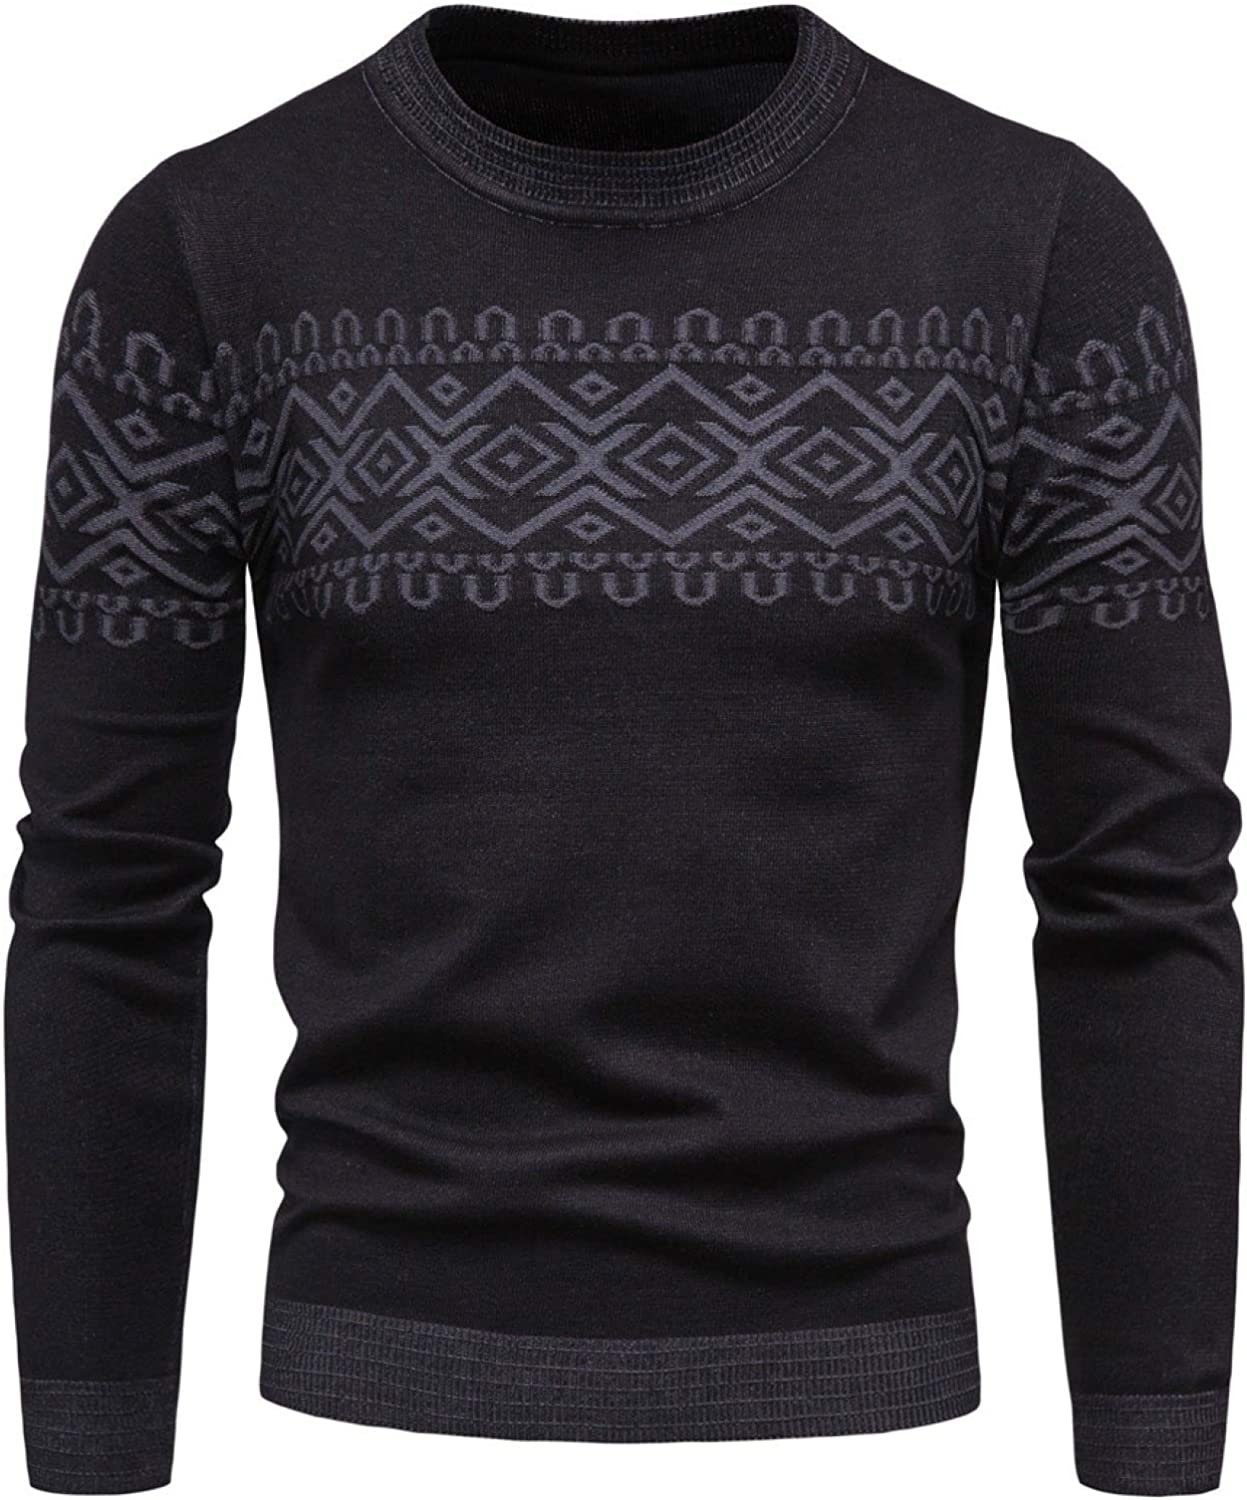 Capabes Men's Casual Pullover Sweater Autumn Knitwear Round Neck Long Sleeve